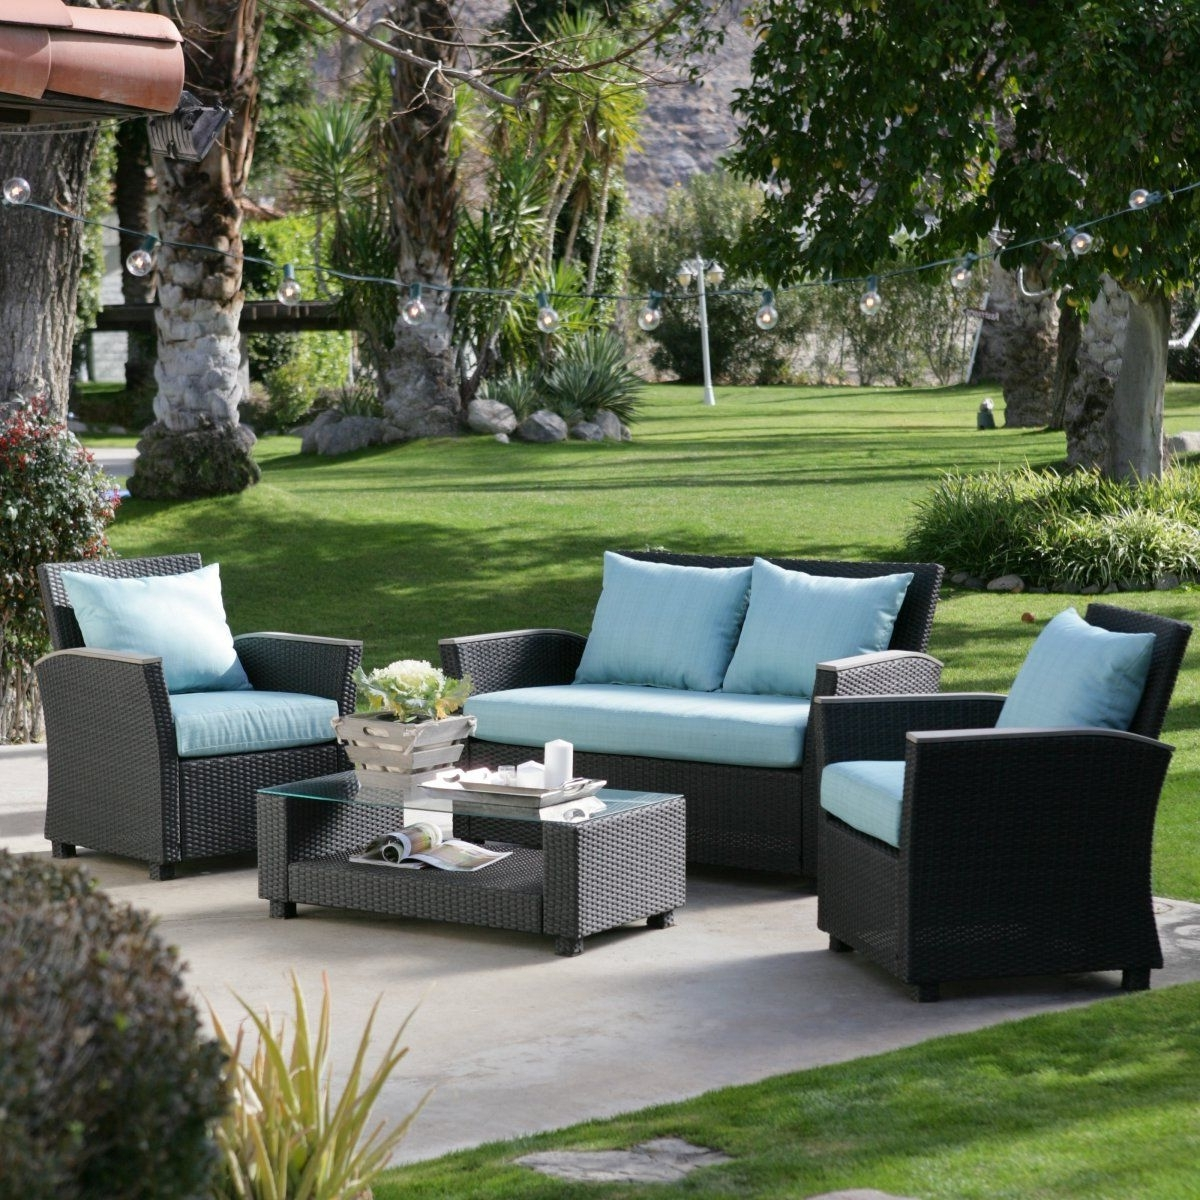 Most Recent Hayneedle Patio Conversation Sets Within $1300 Delphi All Weather Chocolate Wicker Conversation Set – Outdoor (View 19 of 20)